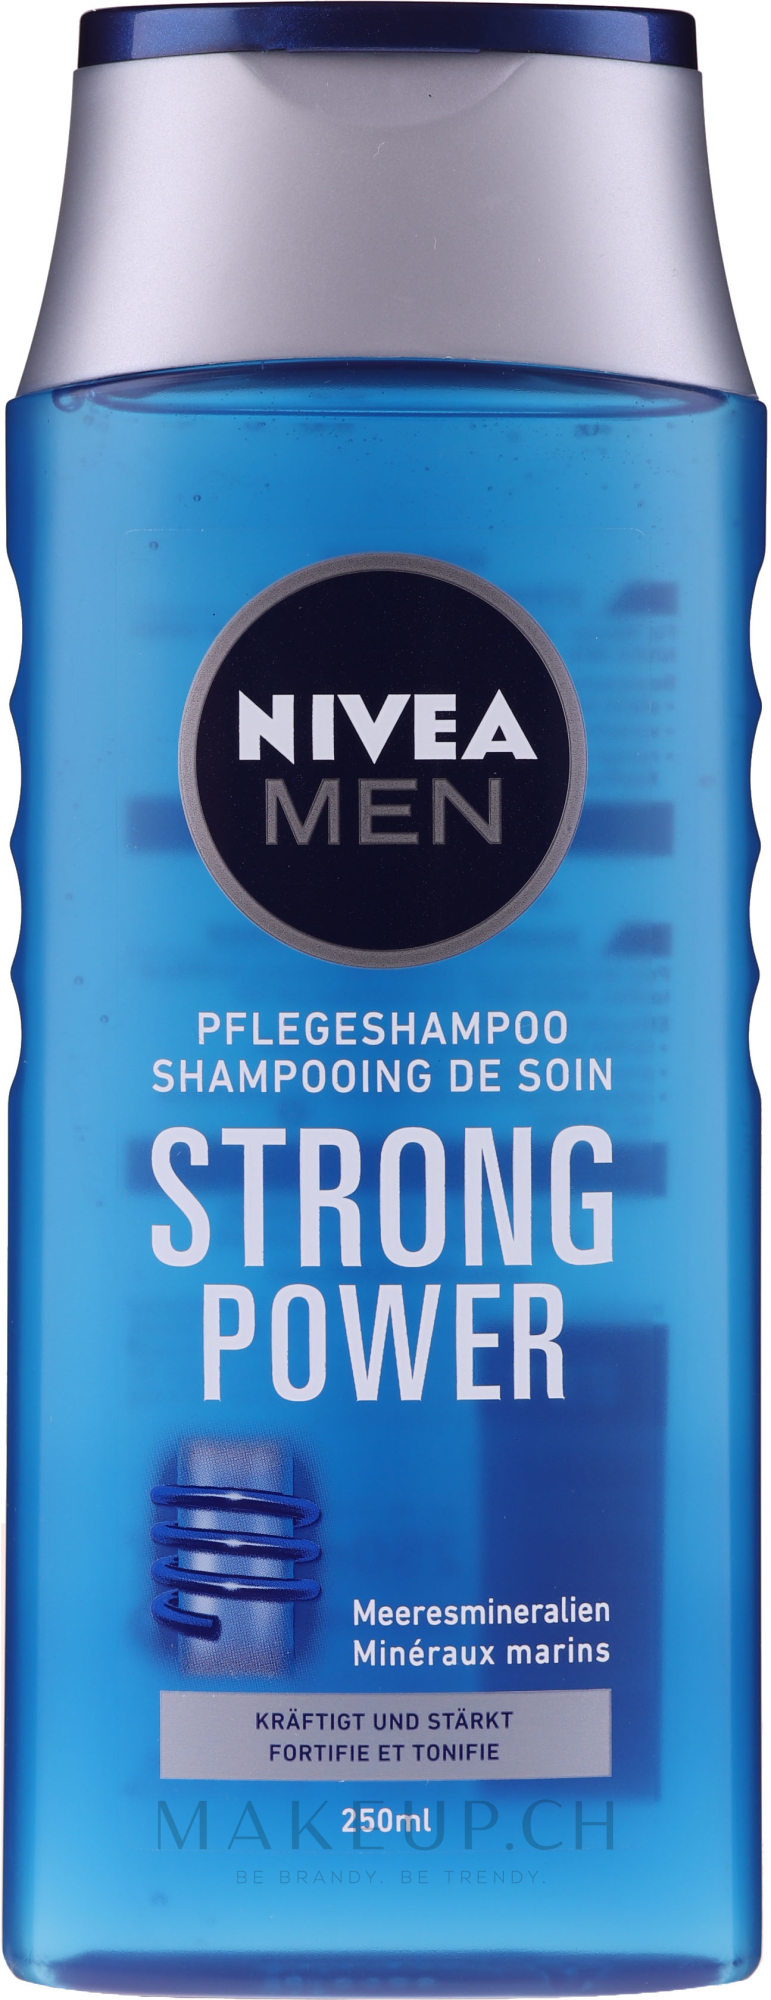 "Pflegeshampoo für Männer ""Strong Power"" - Nivea For Men Shampoo — Bild 250 ml"